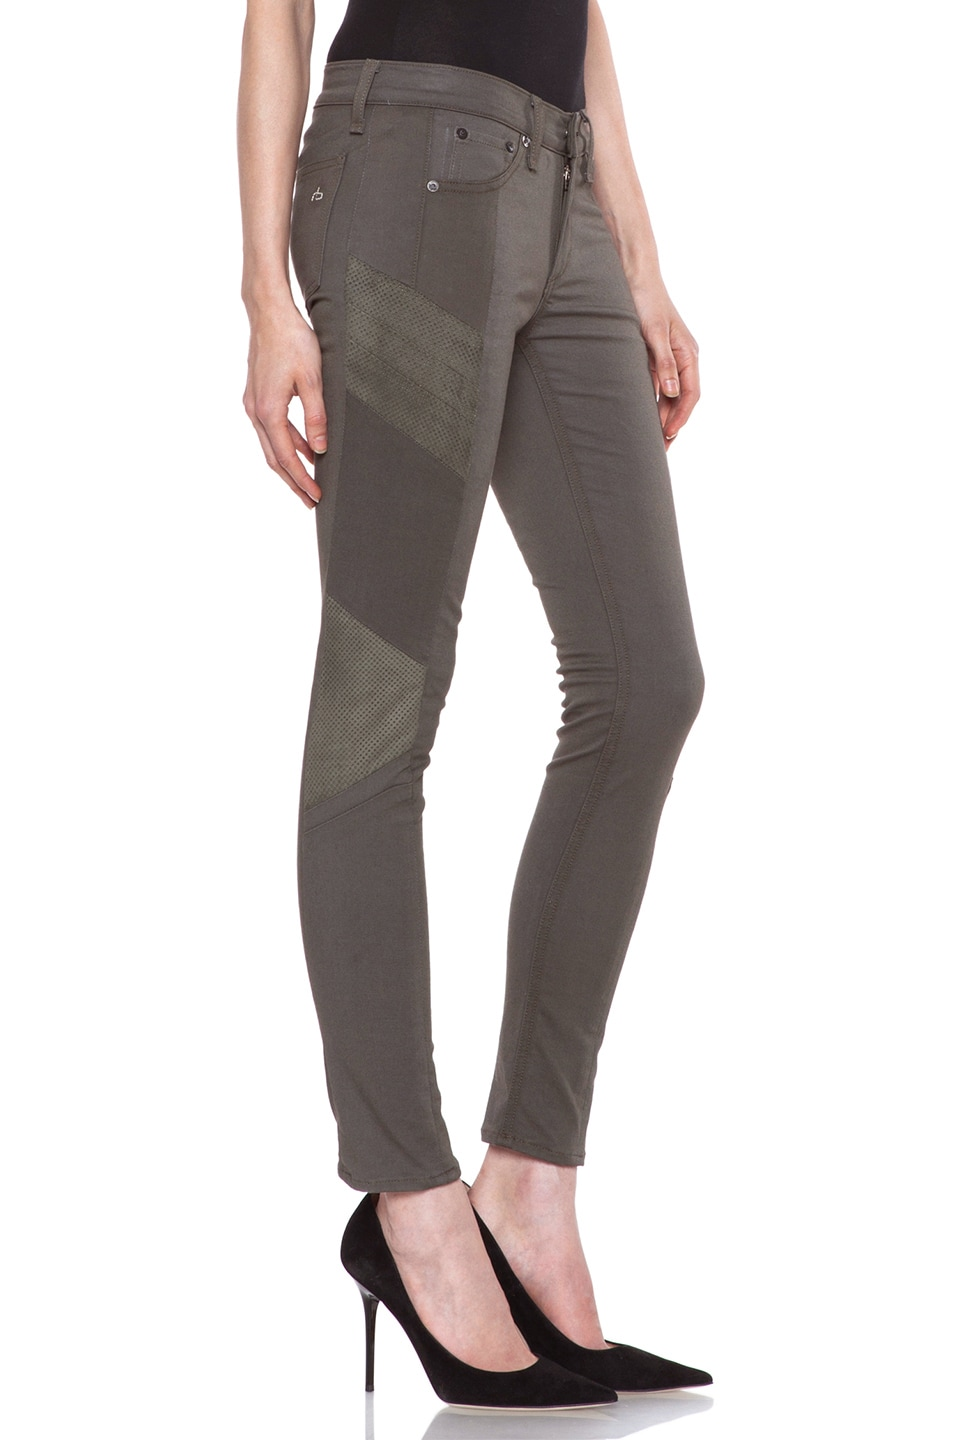 Image 3 of rag & bone/JEAN Halifax Slim-Paneled Legging with Leather in Army